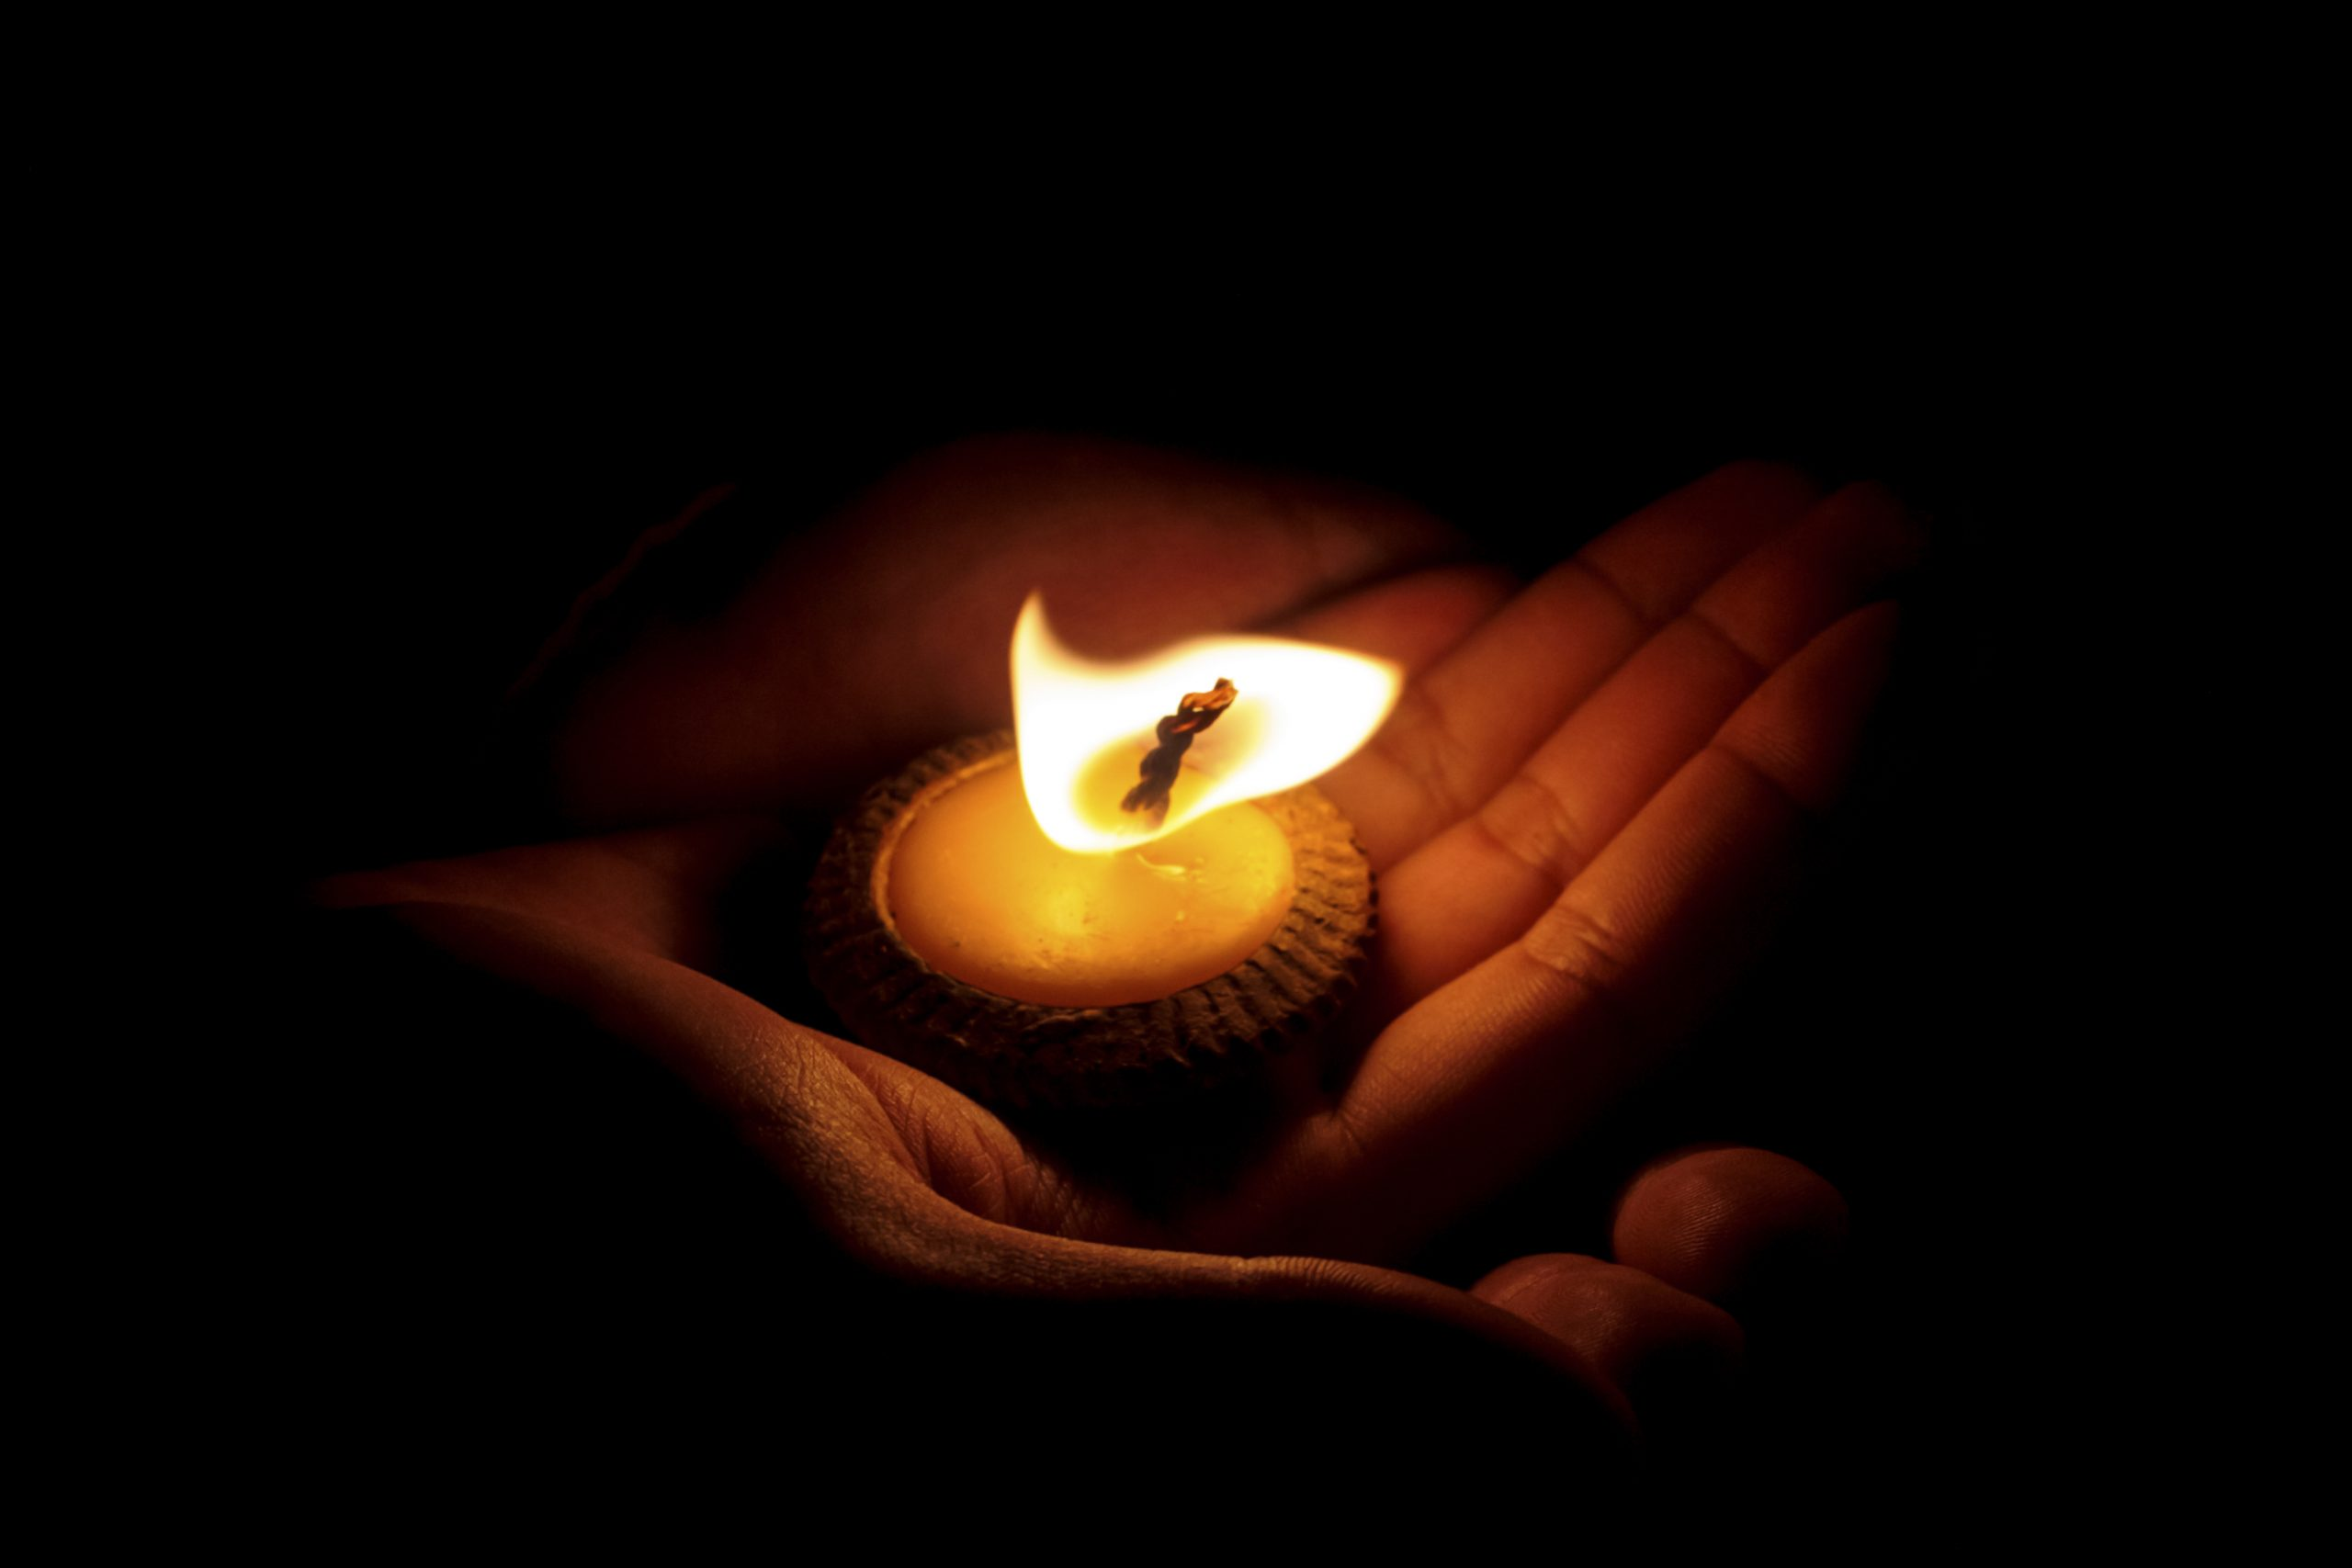 Photo of a candle sitting in the palm of a hand.